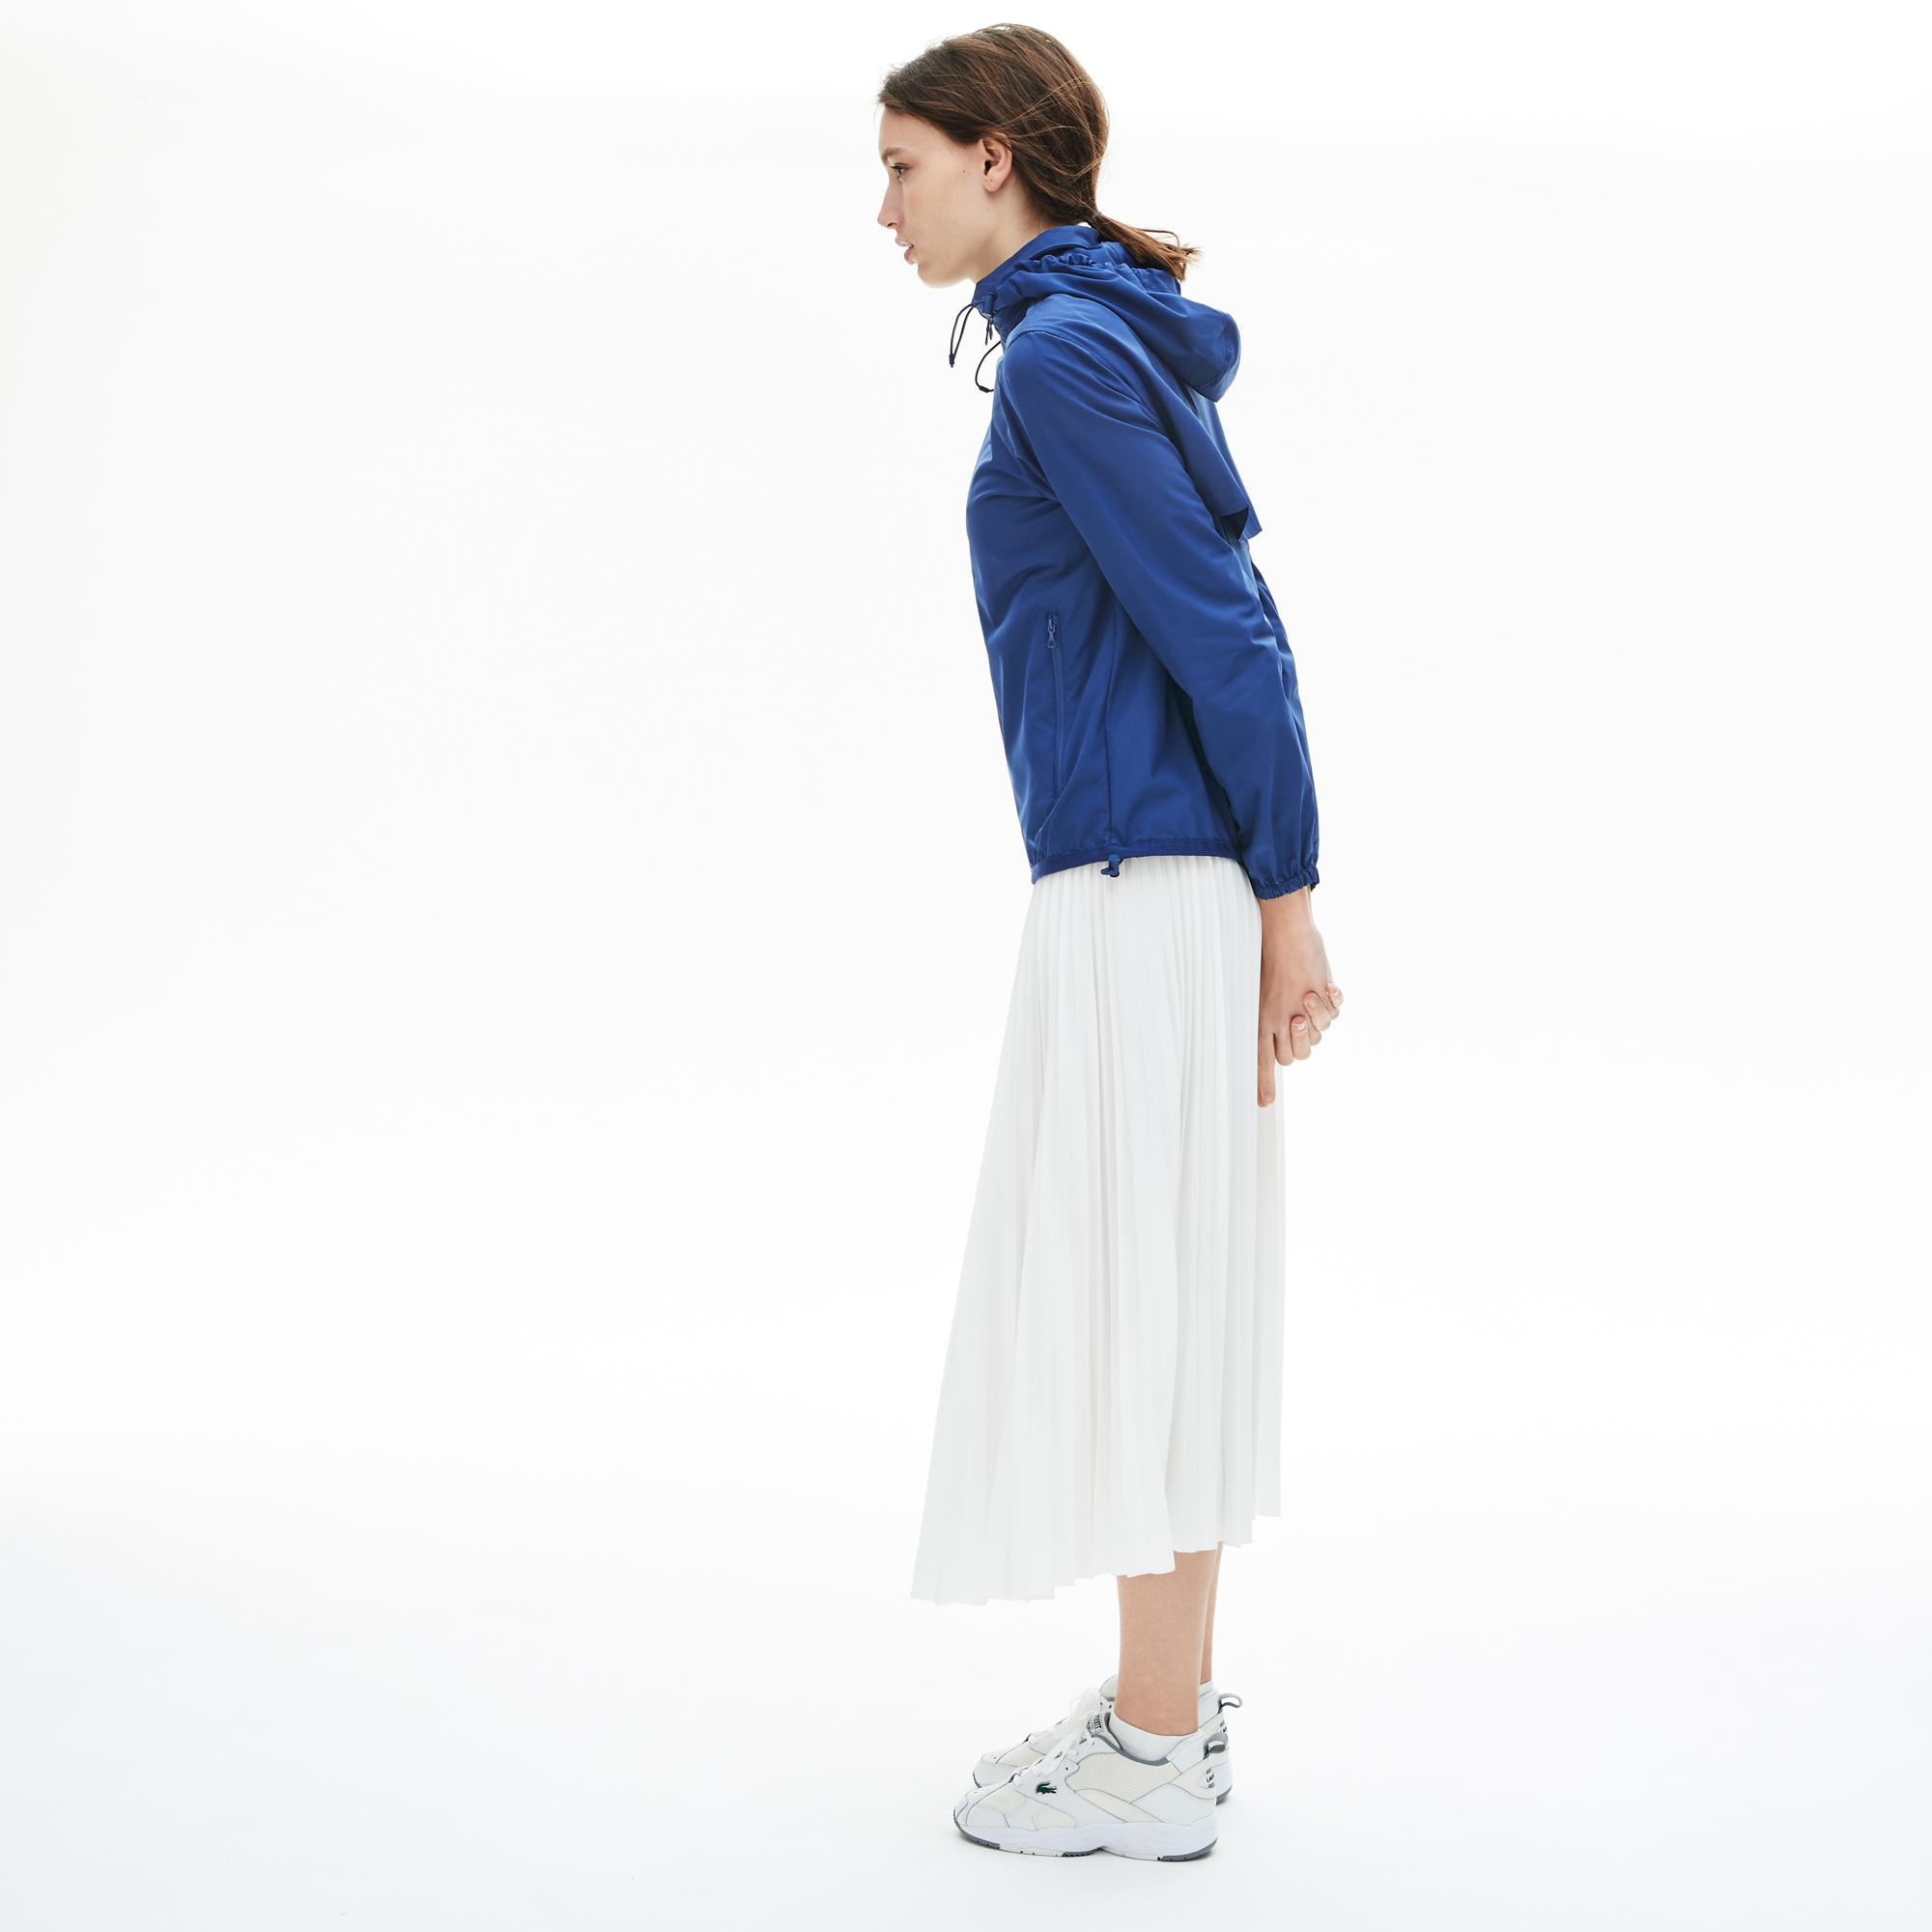 Lacoste Women's Wind And Water-Resistant Foldable Windbreaker